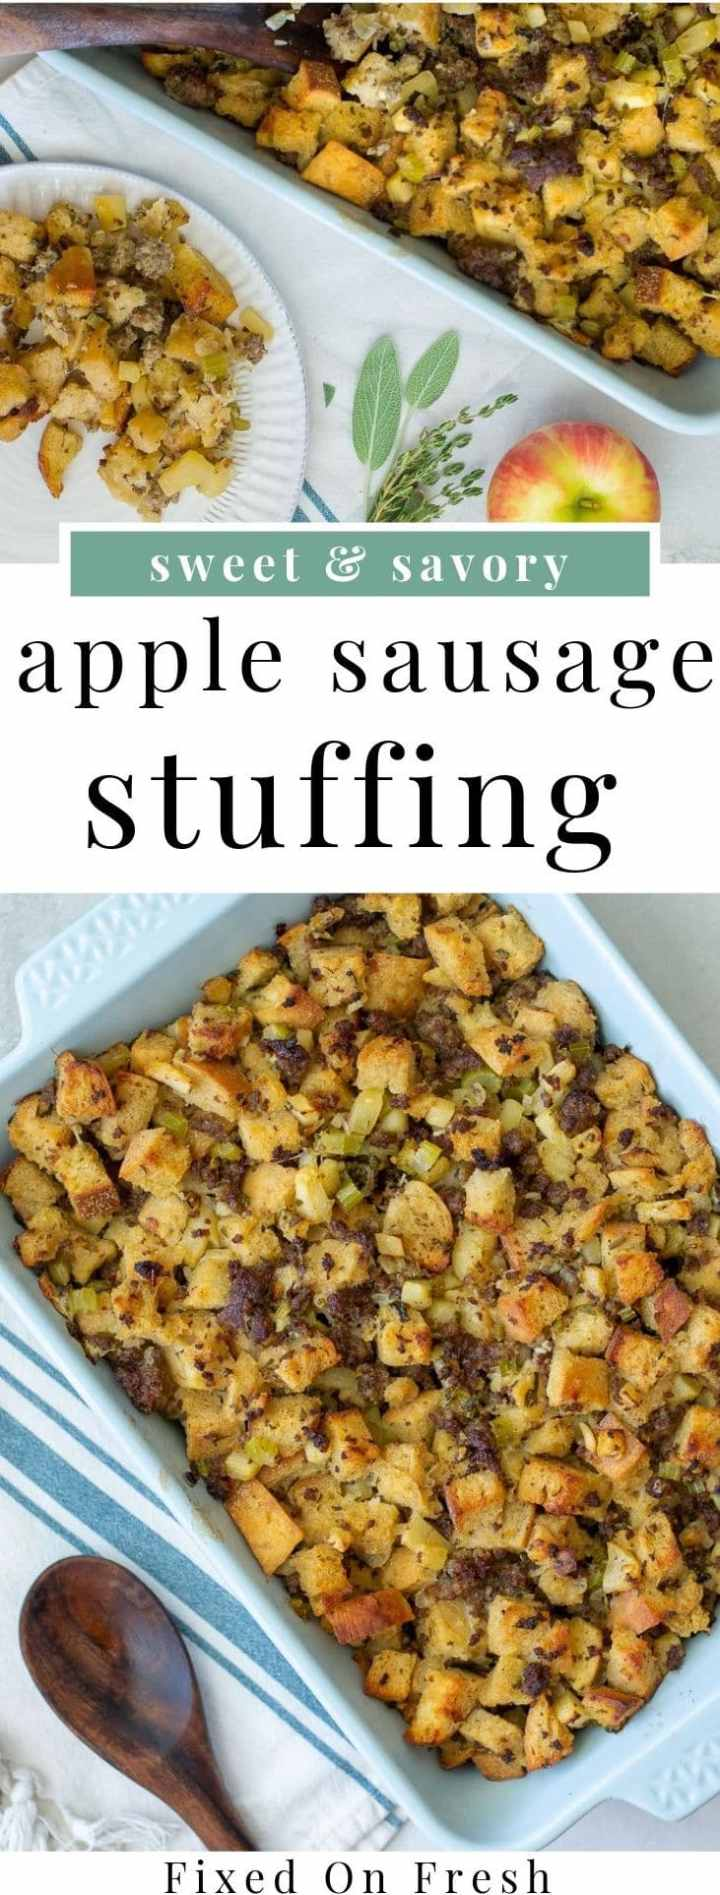 Apple Sausage Stuffing is an easy homemade stuffing recipe that you can make ahead and enjoy the next day. This will become your favorite fall and Thanksgiving recipe in no time! #thanksgiving #stuffing #fallrecipes